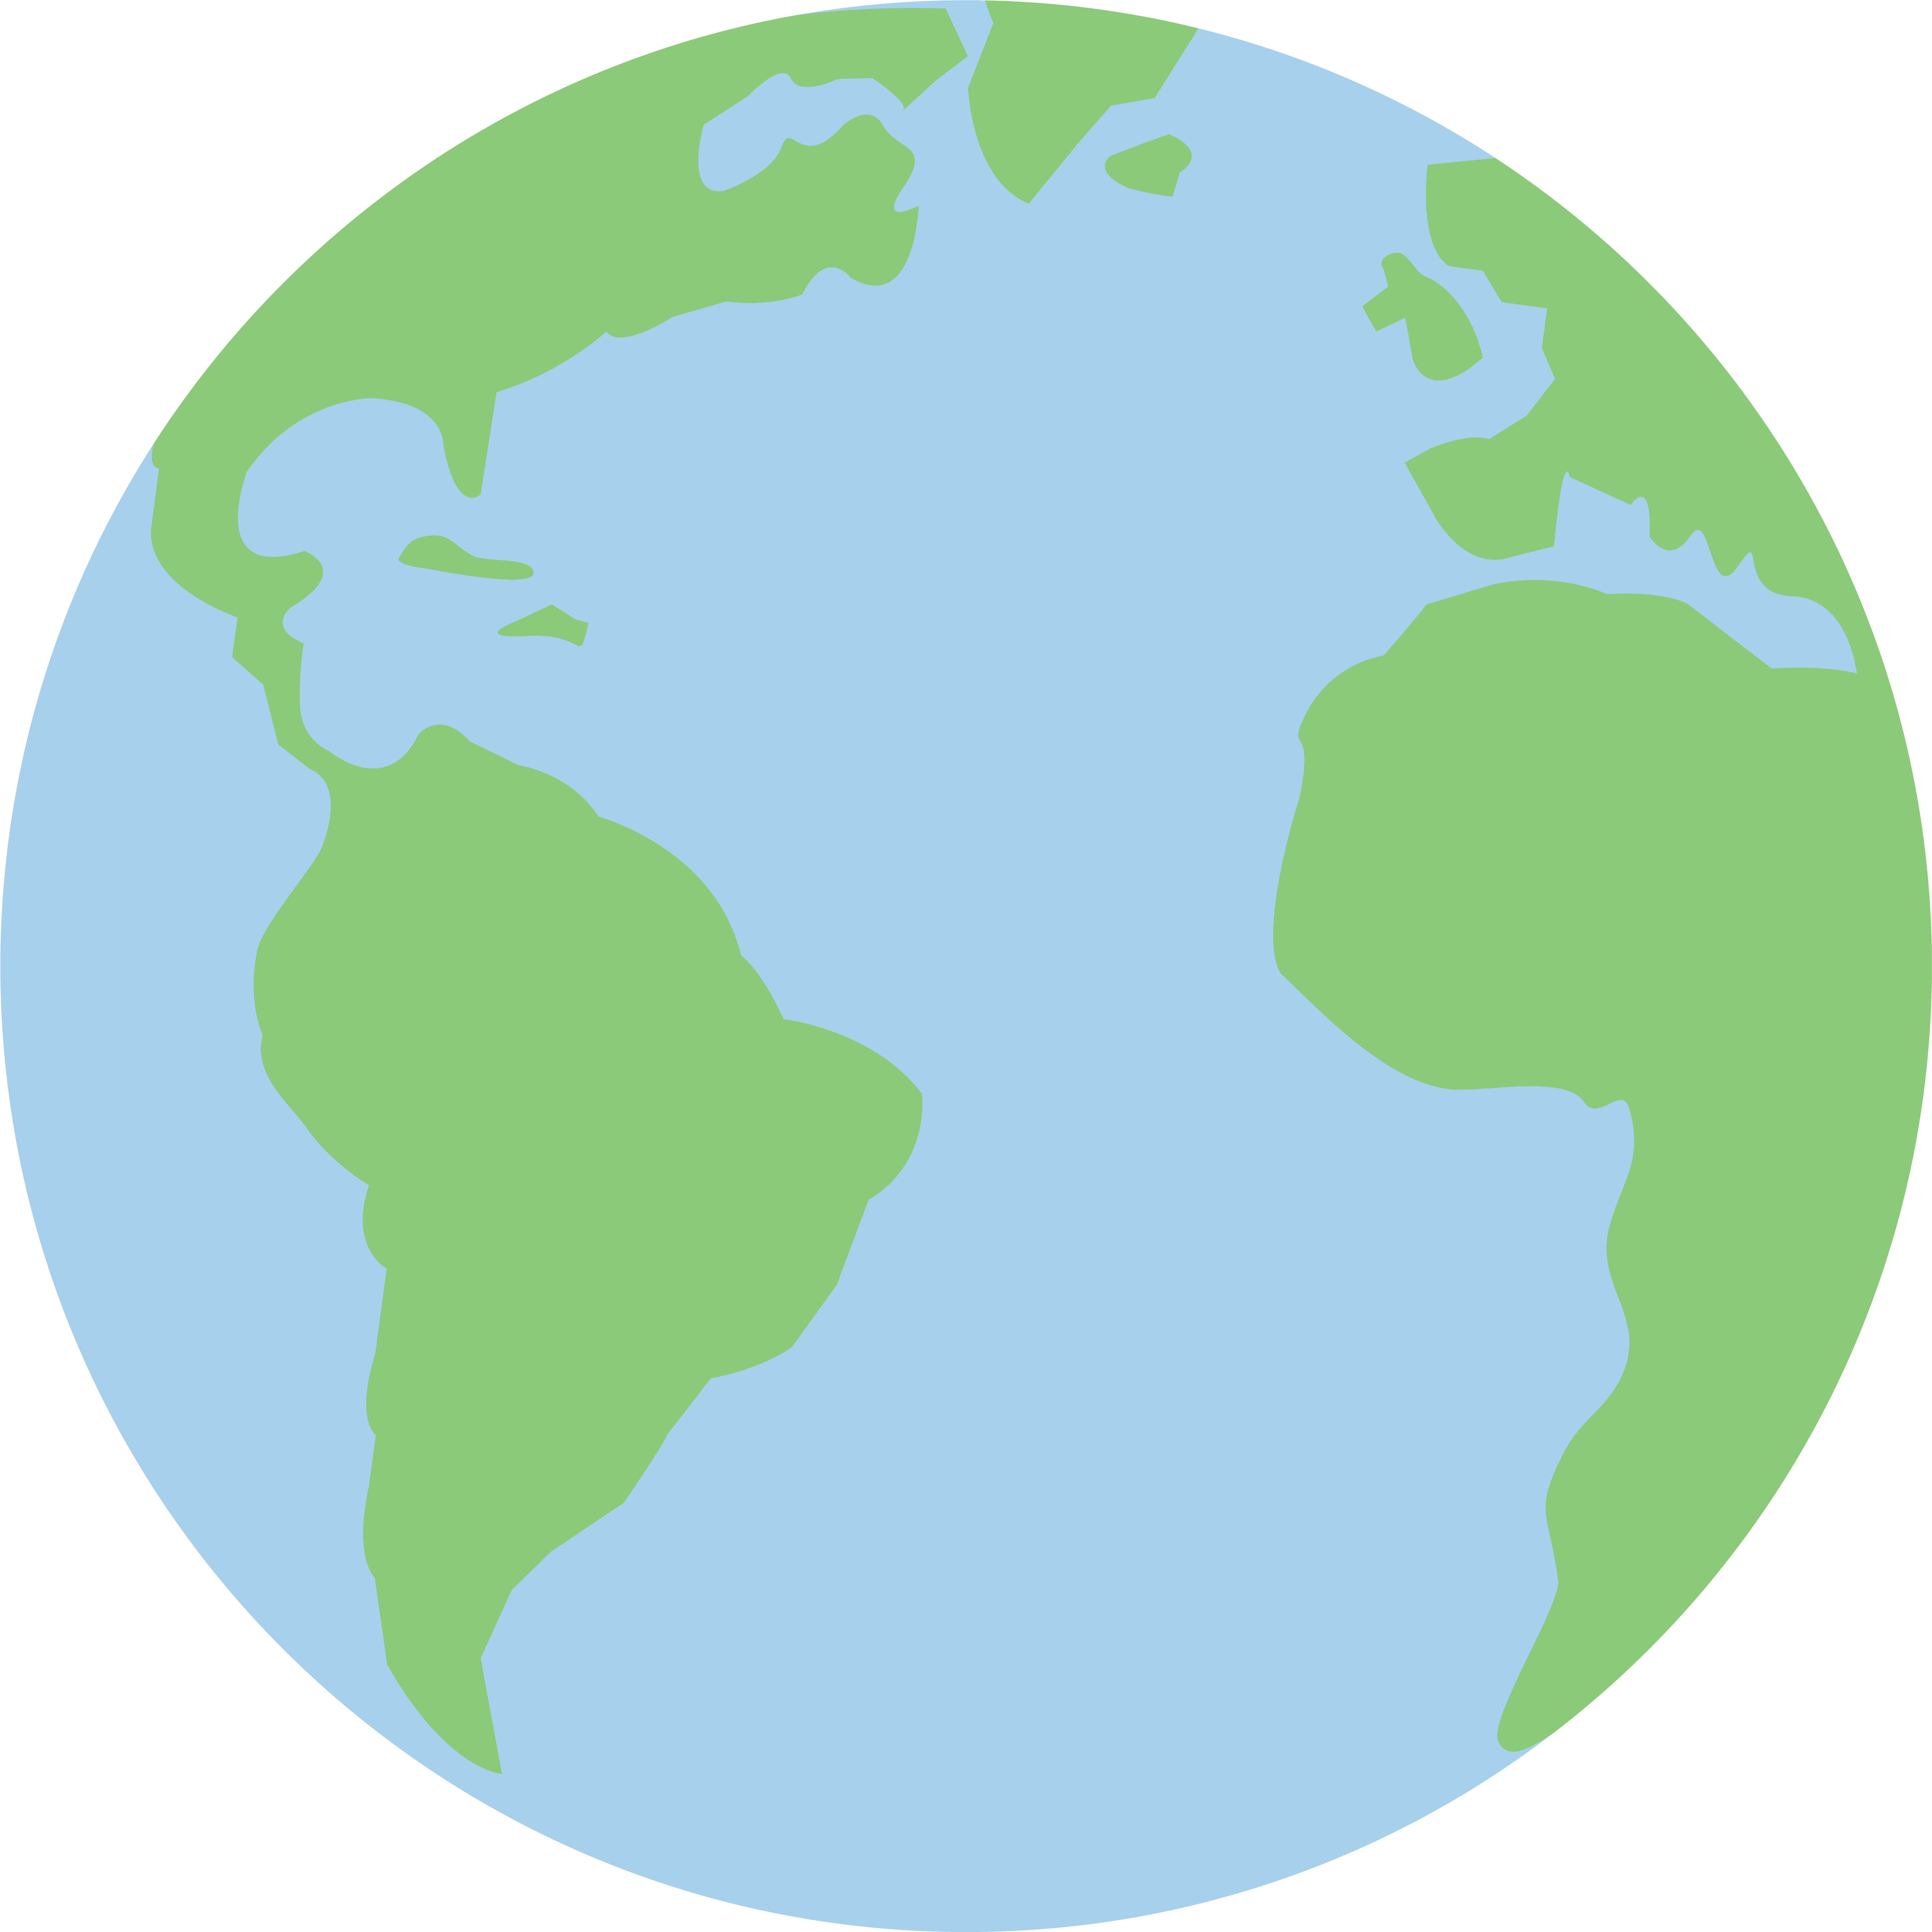 Download on clipartwiki . Planets clipart planet earth